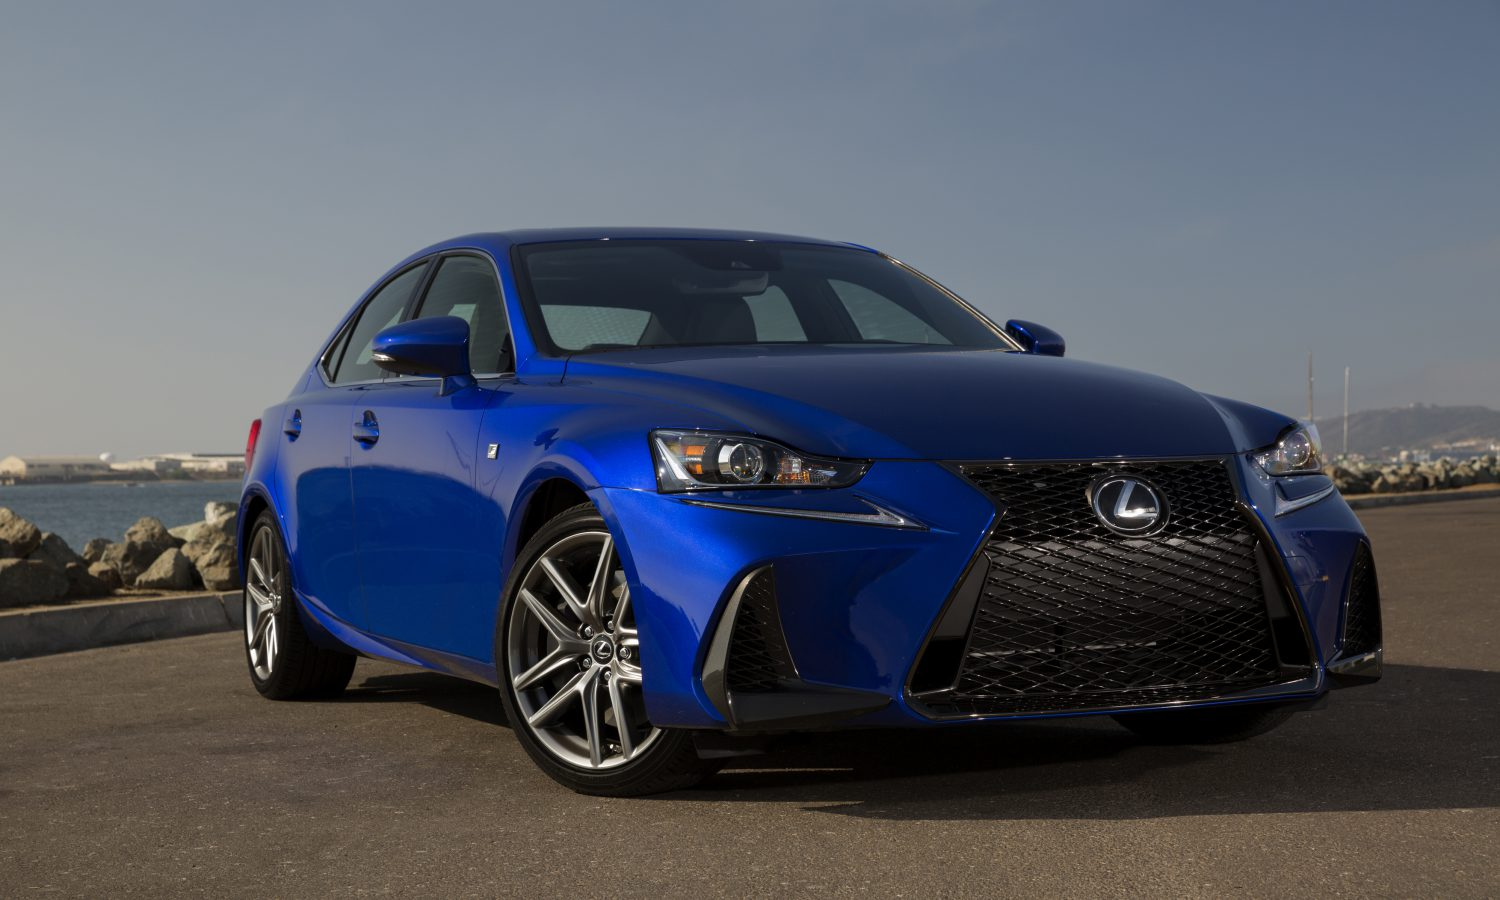 Lexus 2018 IS: Sporty Design and an Exhilarating Ride